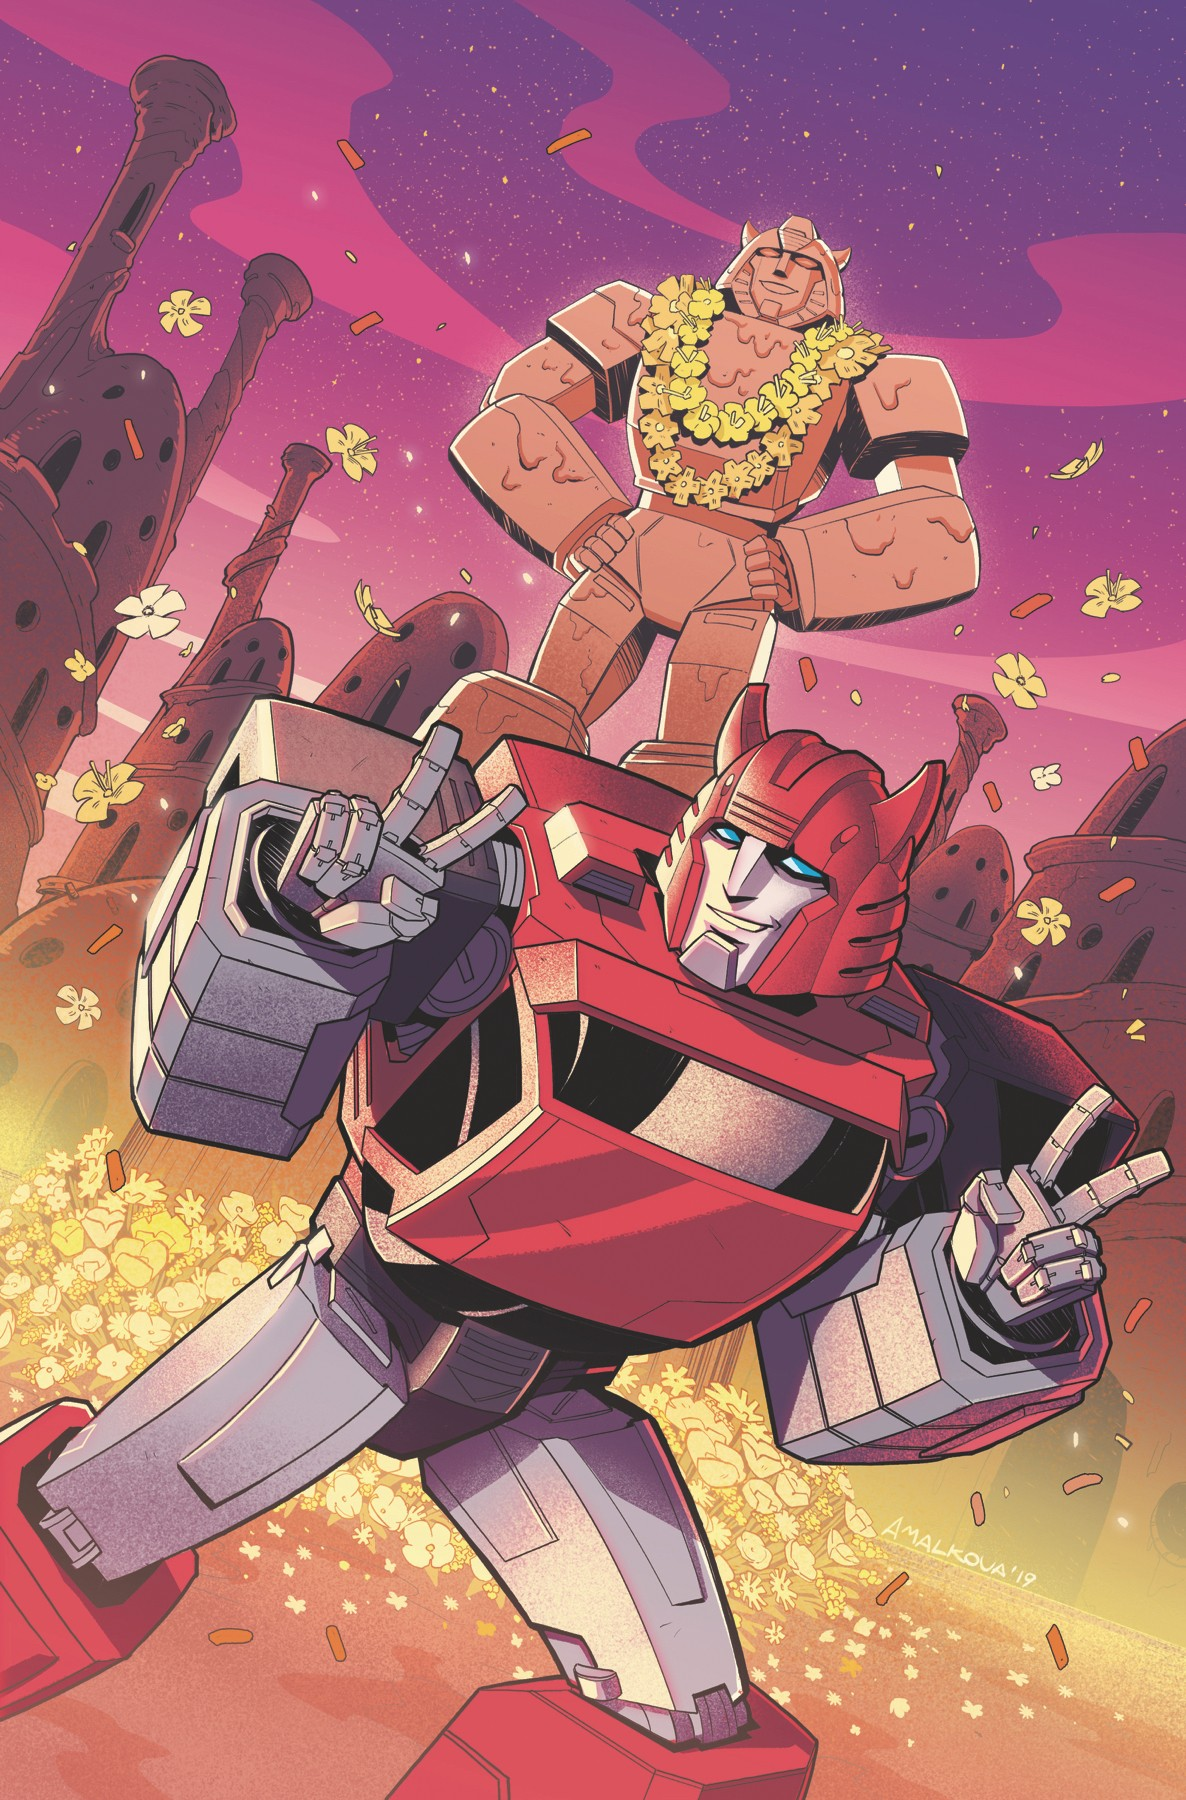 Transformers News: IDW January 2019 Transformers Comics Solicitations Features the Beast Wars and G1 Predacons